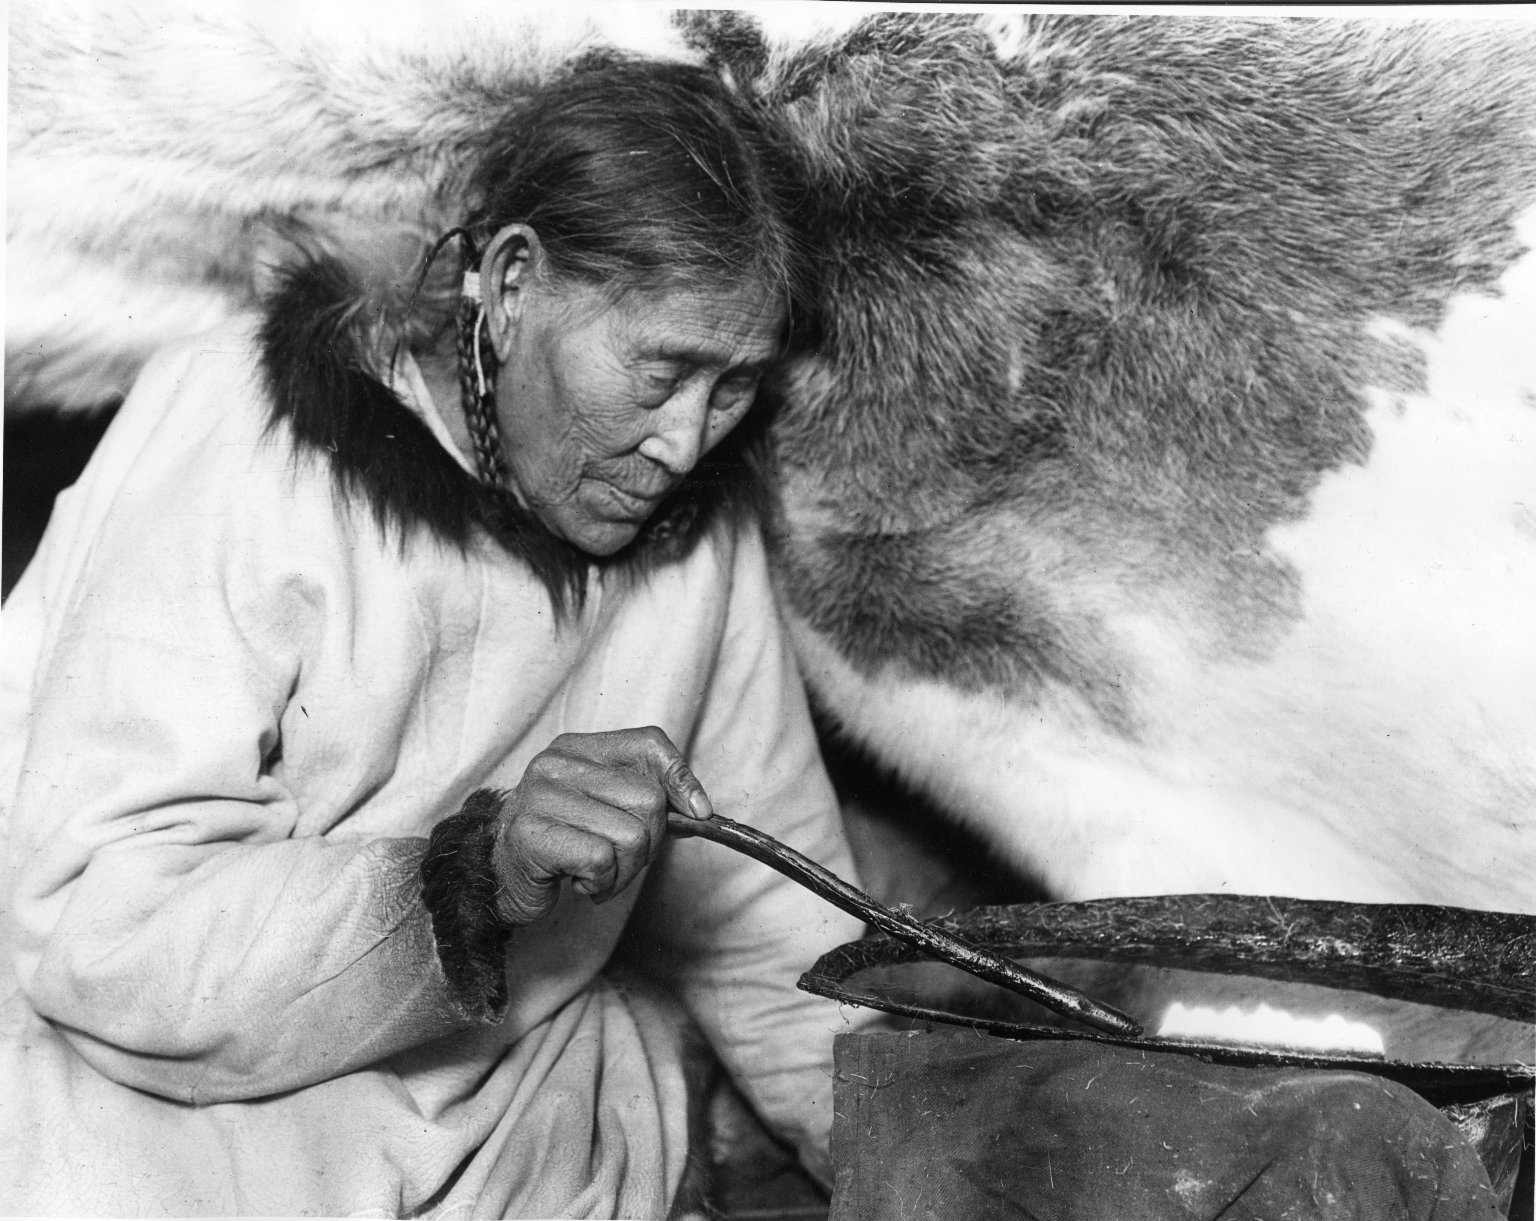 Native Woman with Seal Oil Lamp